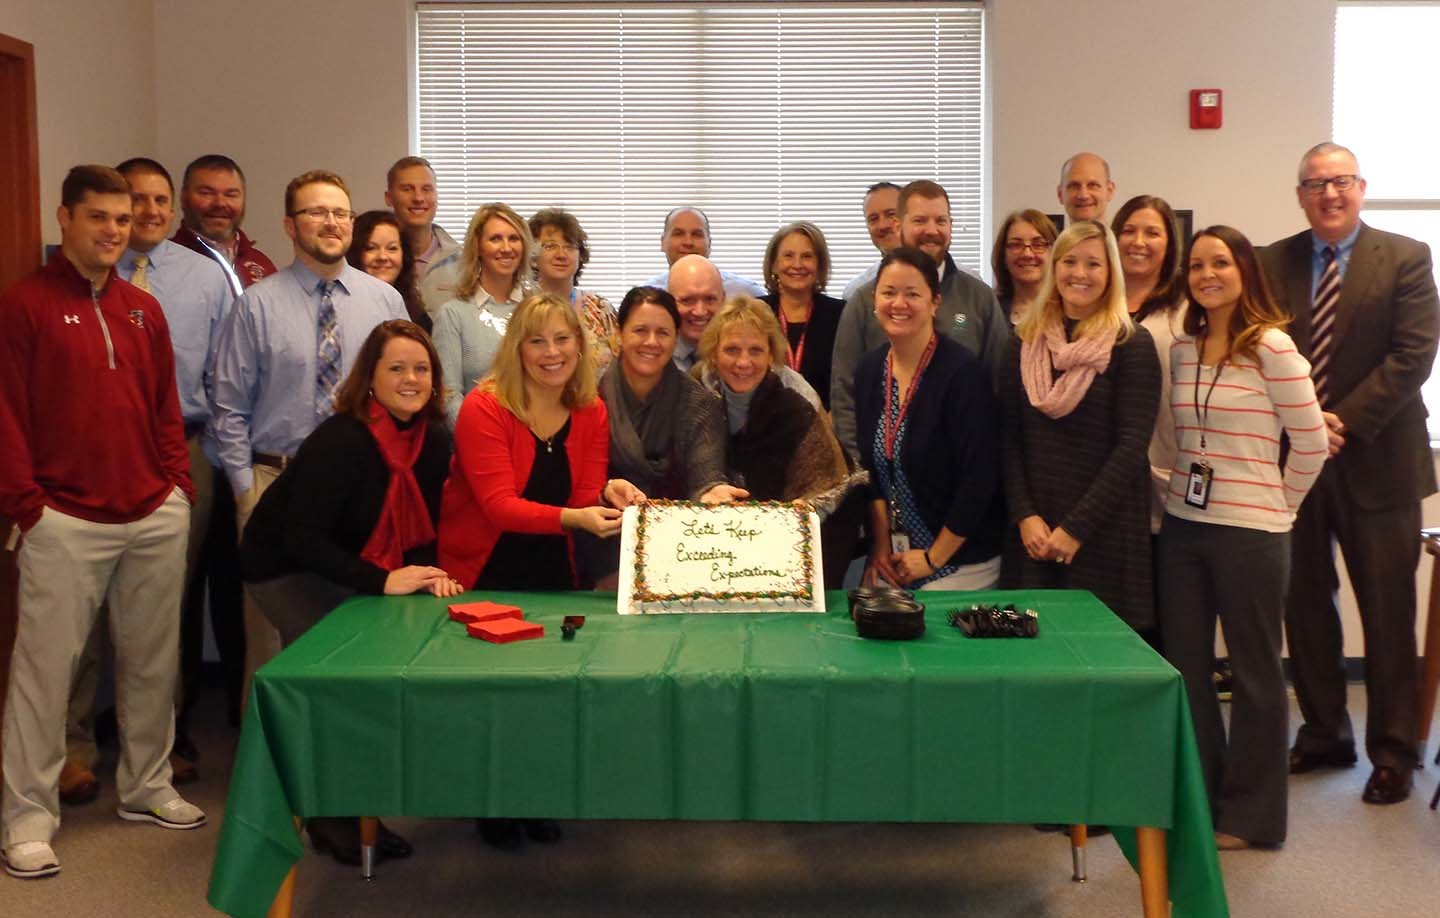 Joint Administrative Team with celebratory cake